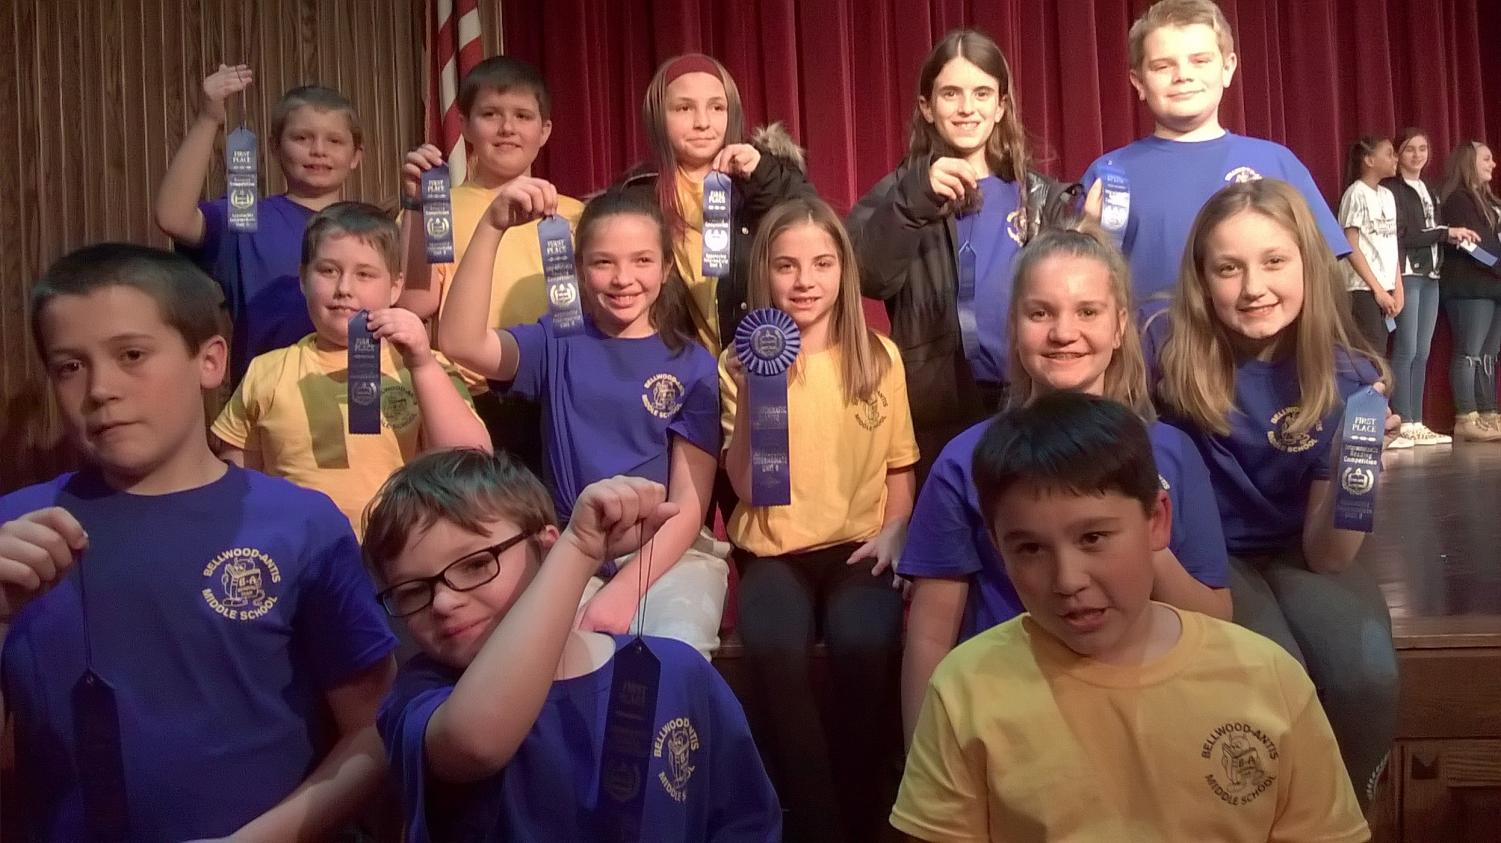 Members of the 5th & 6th Reading Competition showing off their first place ribbons.